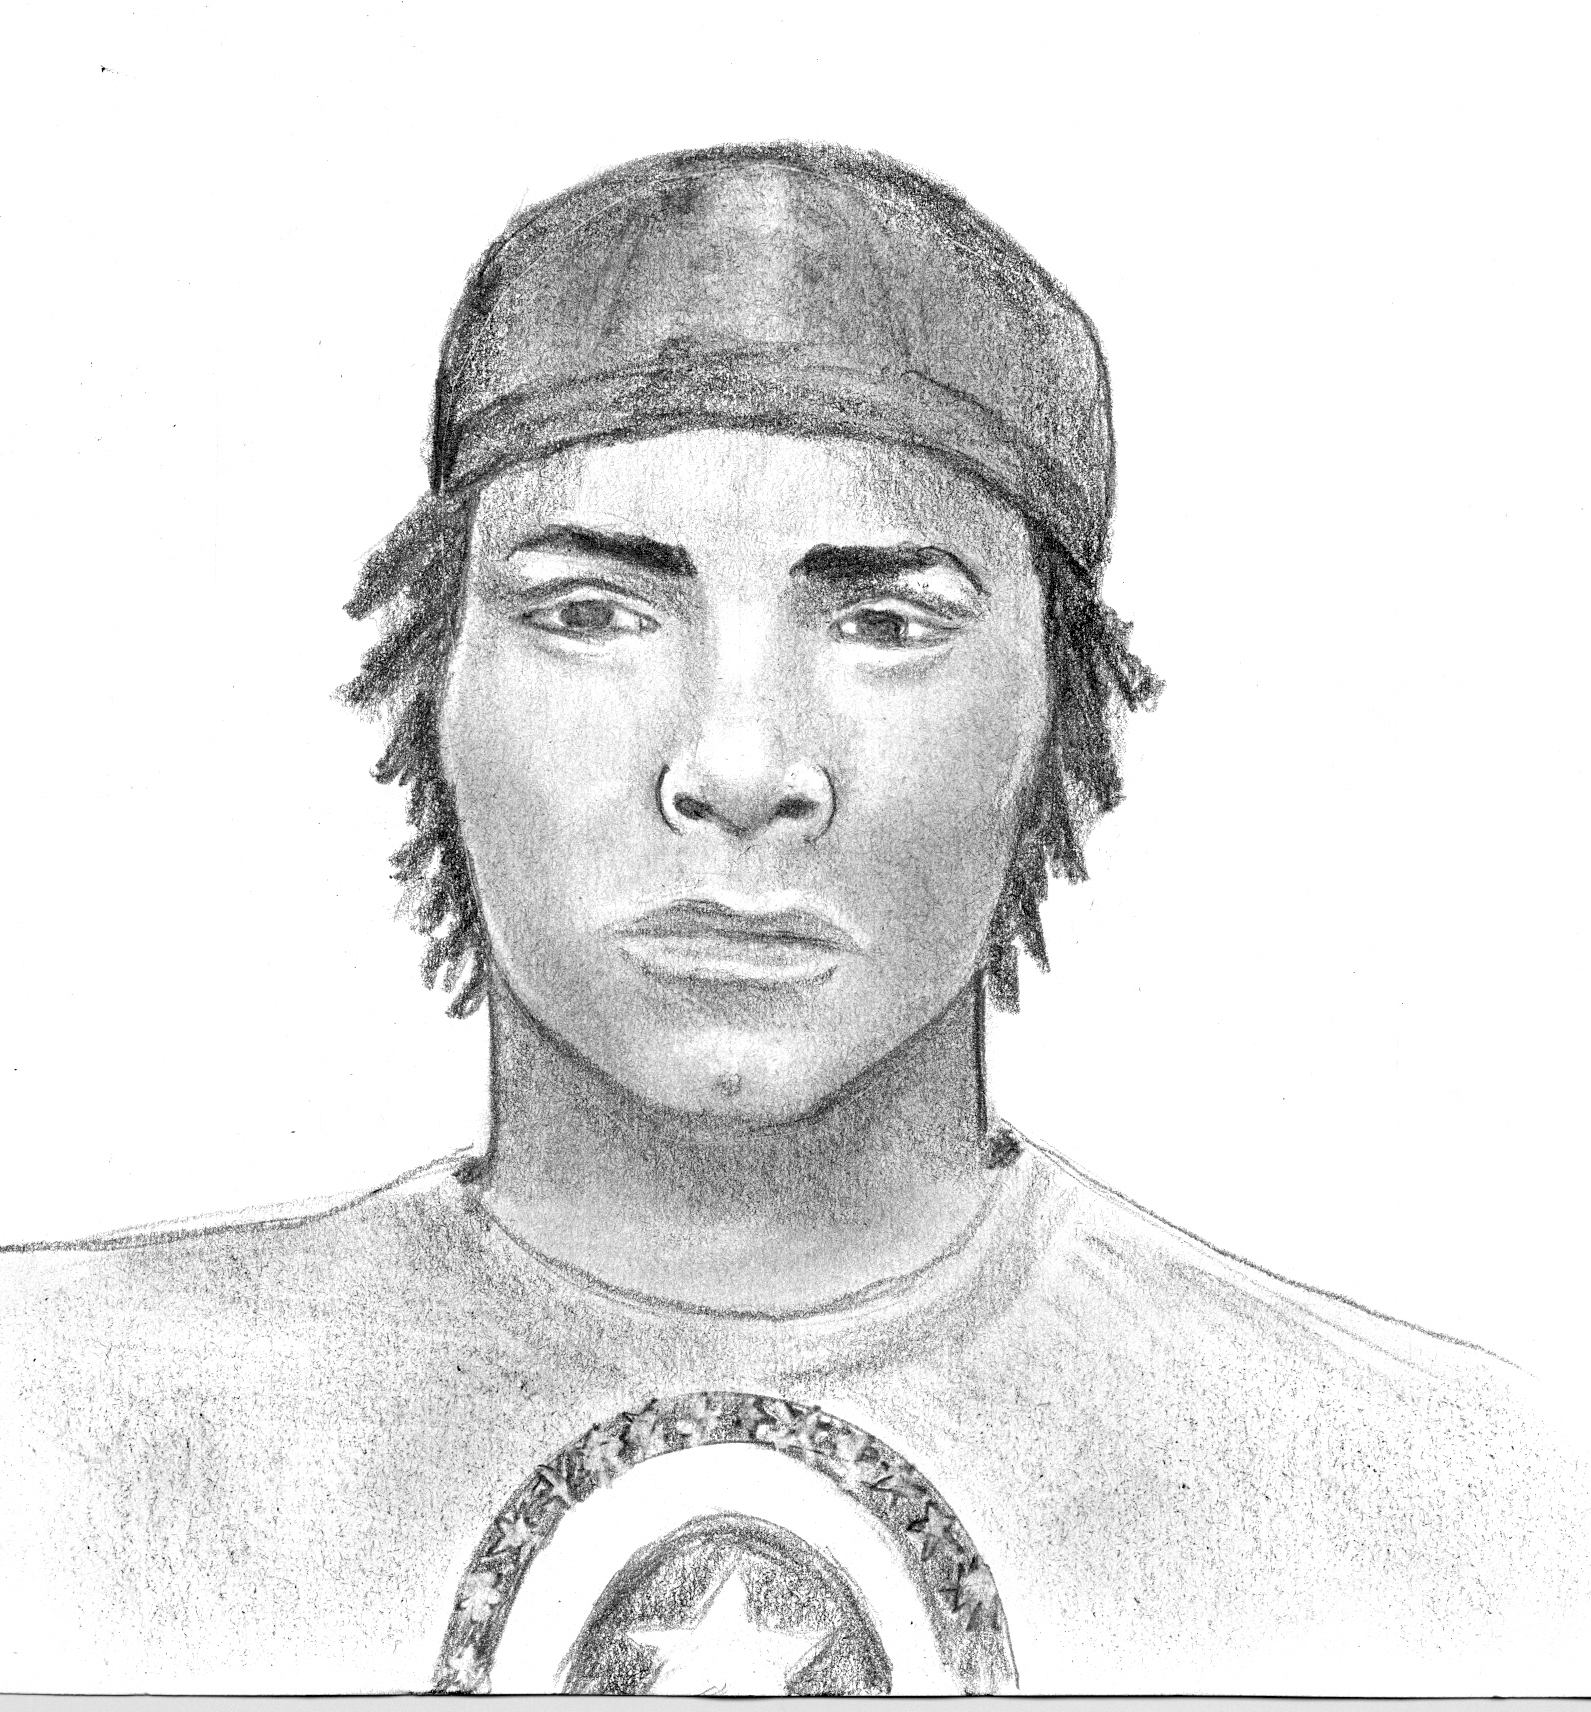 HEB Thieves Composite Sketch.jpg